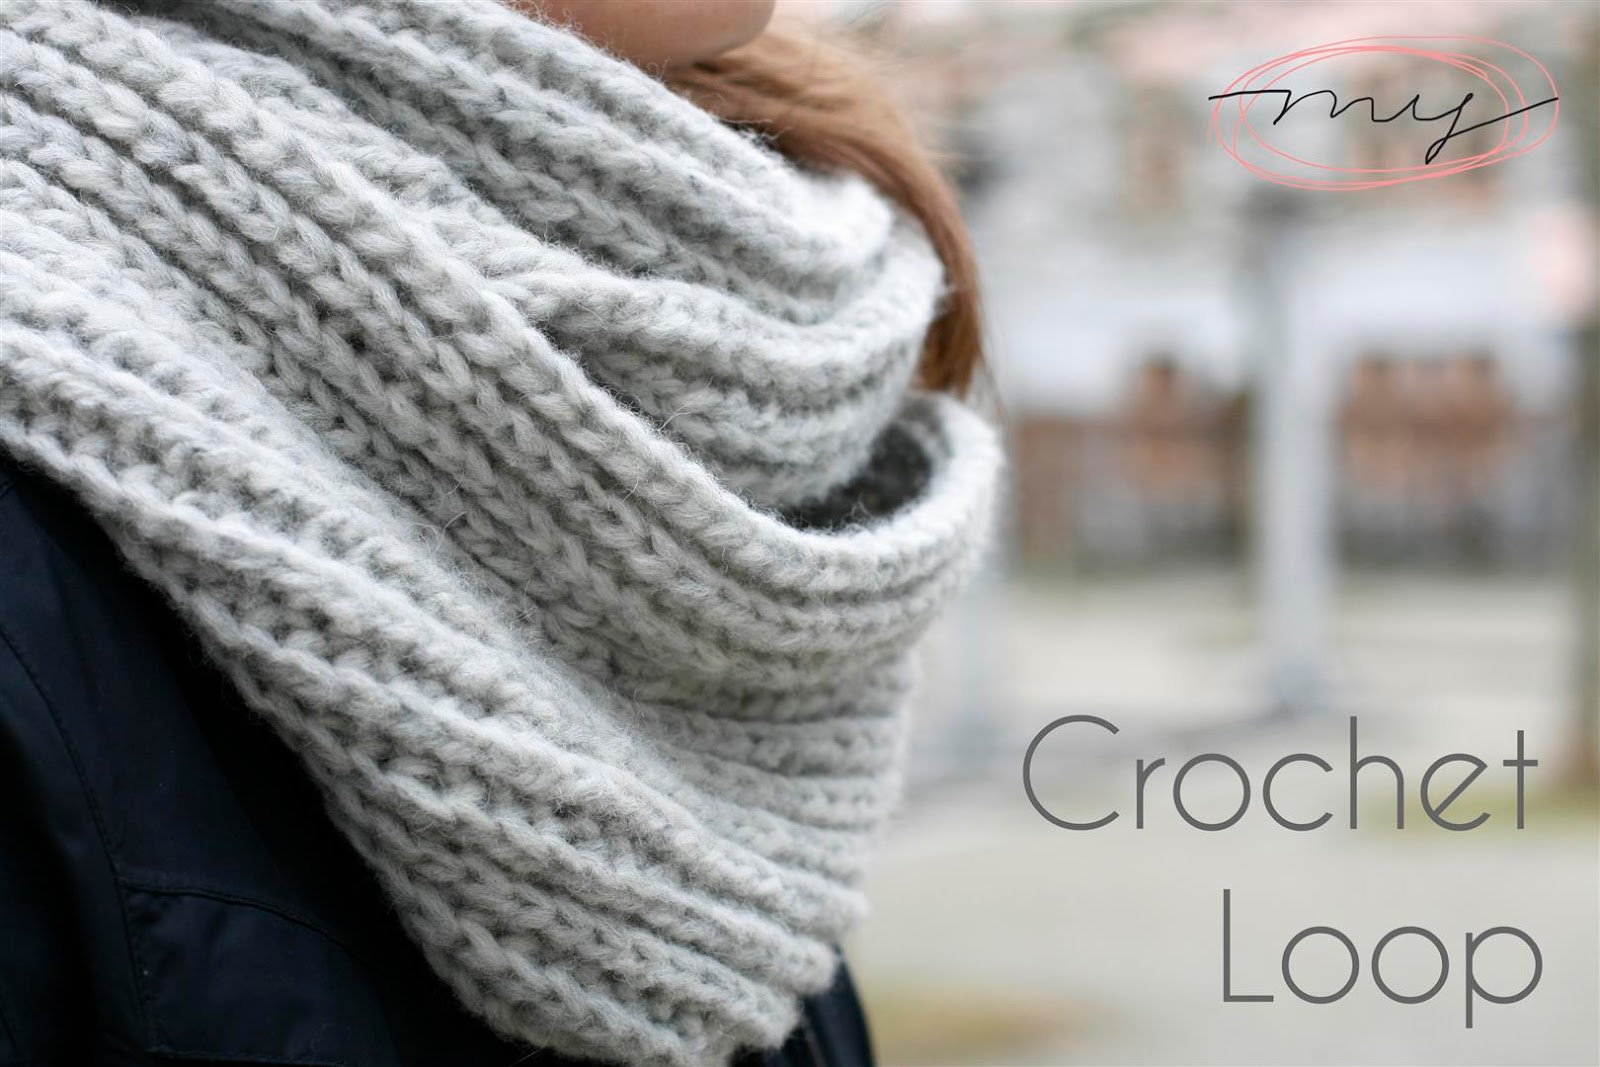 nein gehkelt easy loop schal simple infinity scarf crochet diy neu mit video tutorial - Schal Hkeln Muster